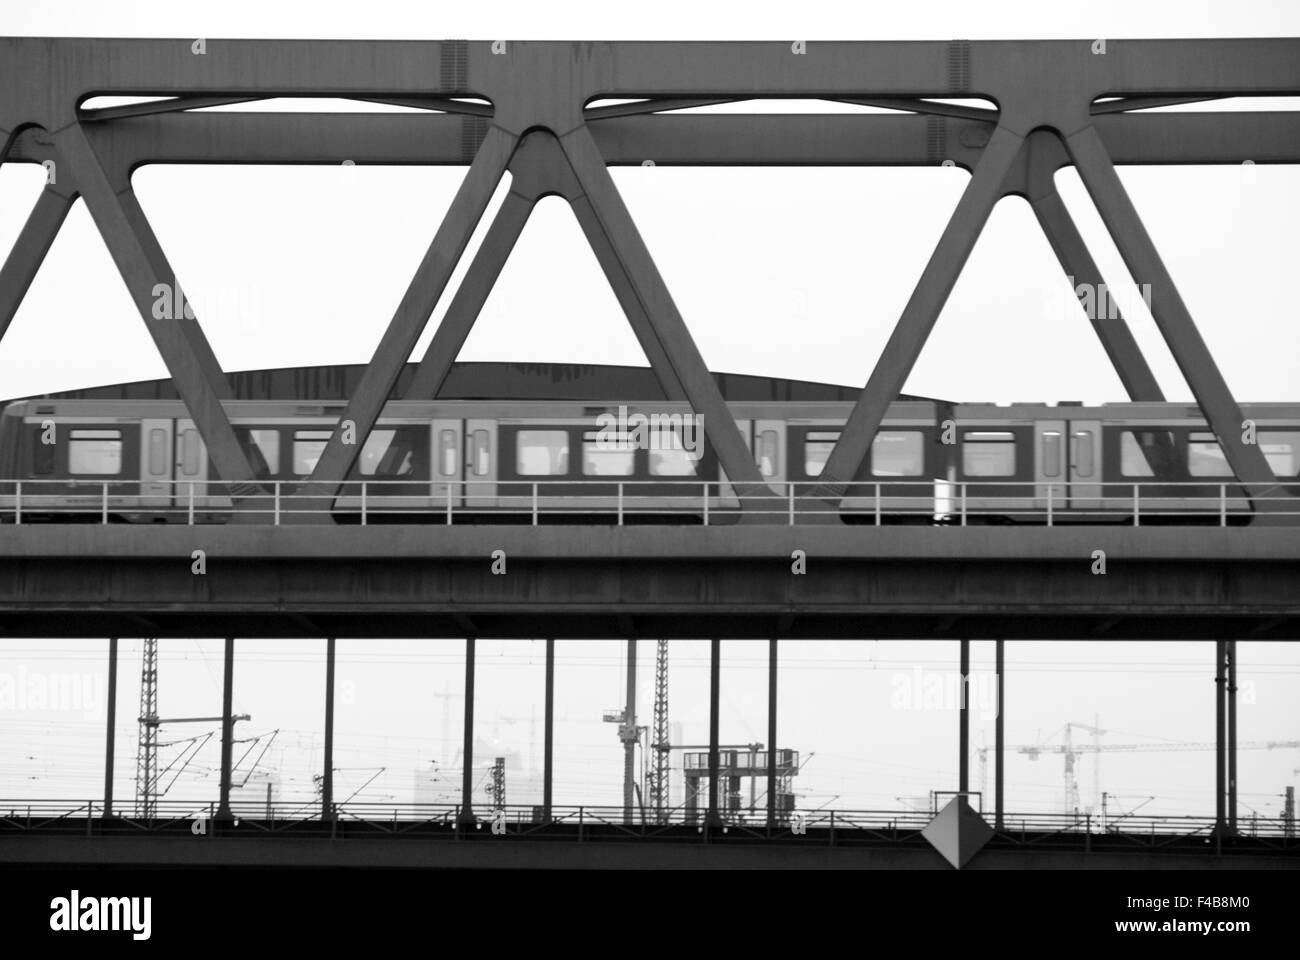 Subway on a railway bridge Stock Photo